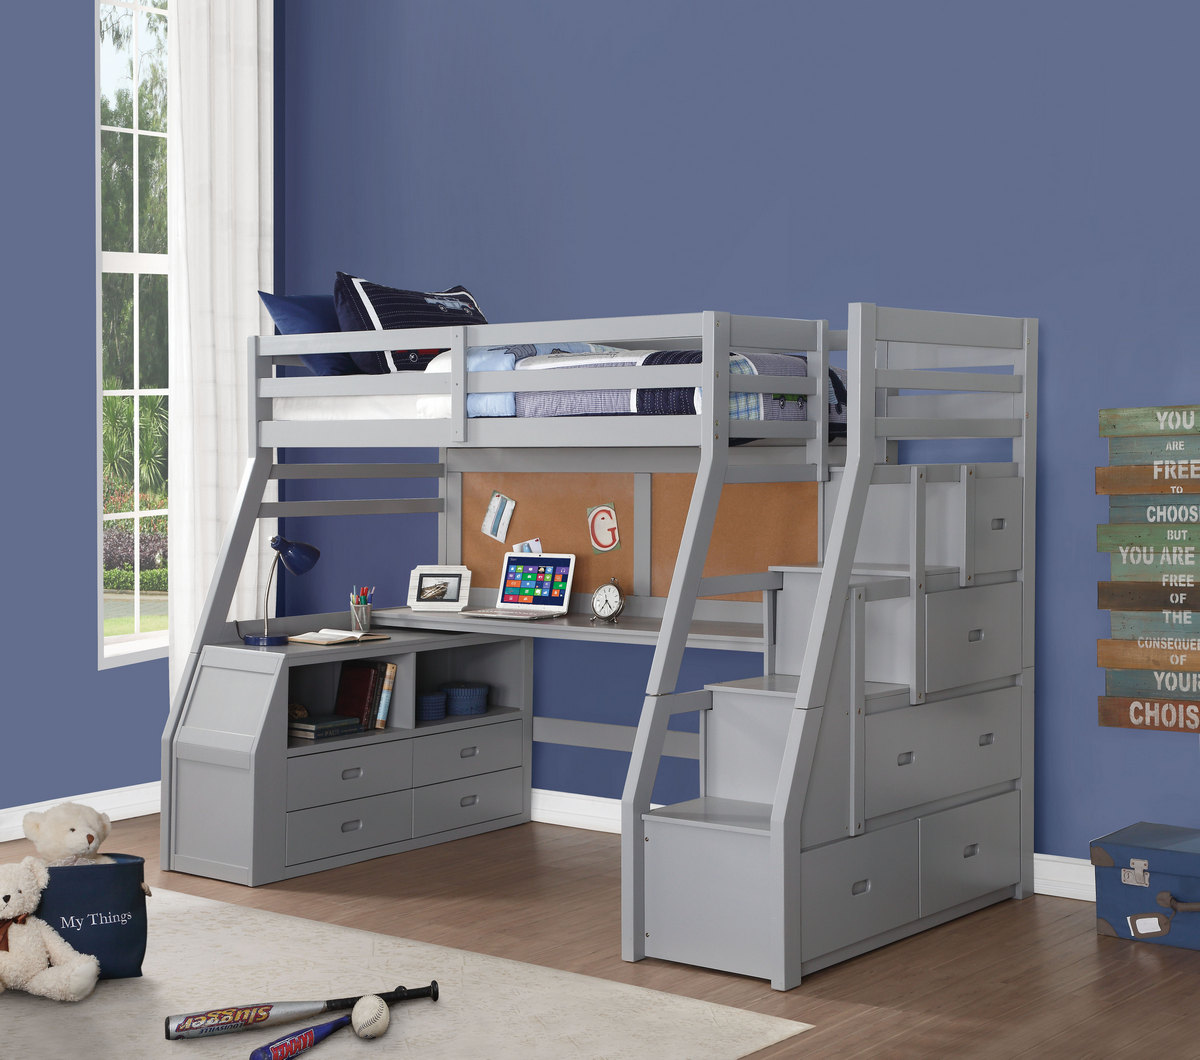 Acme Furniture Bed Storage Ladder Photo